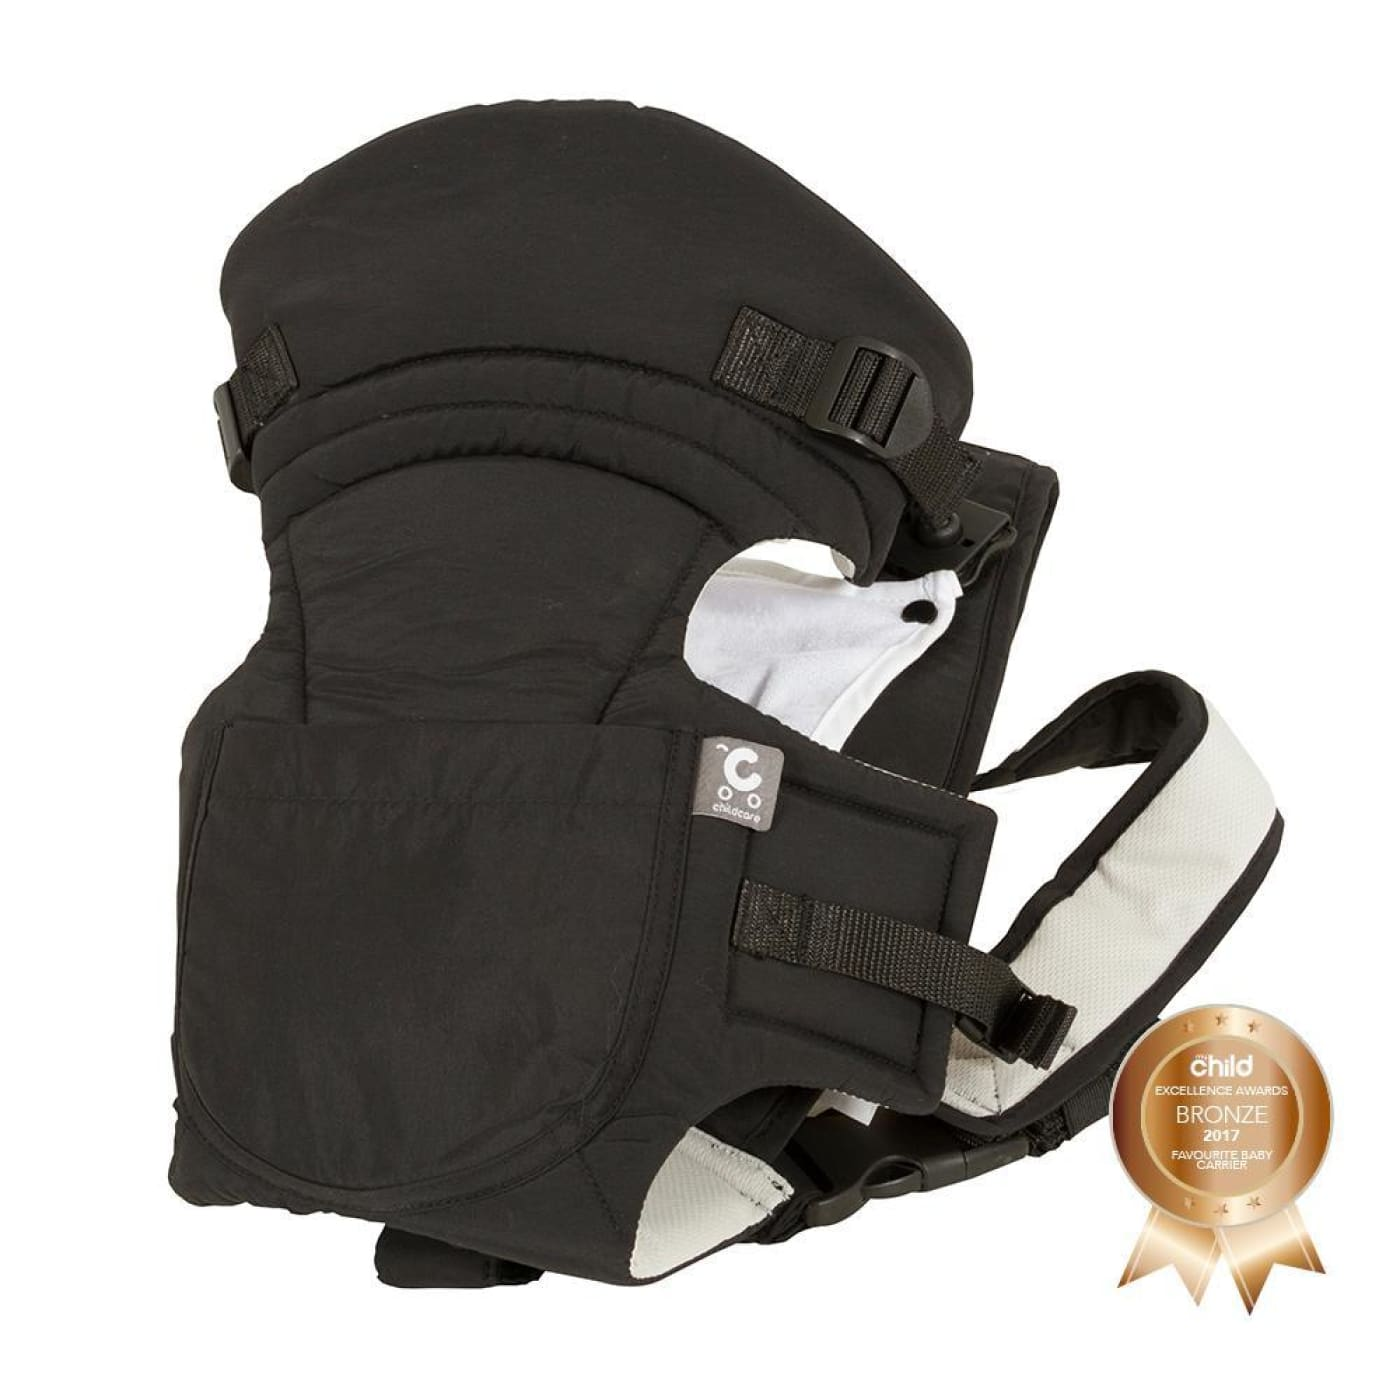 Childcare Baby Carrier - Black - Black - ON THE GO - BABY CARRIERS/SLINGS